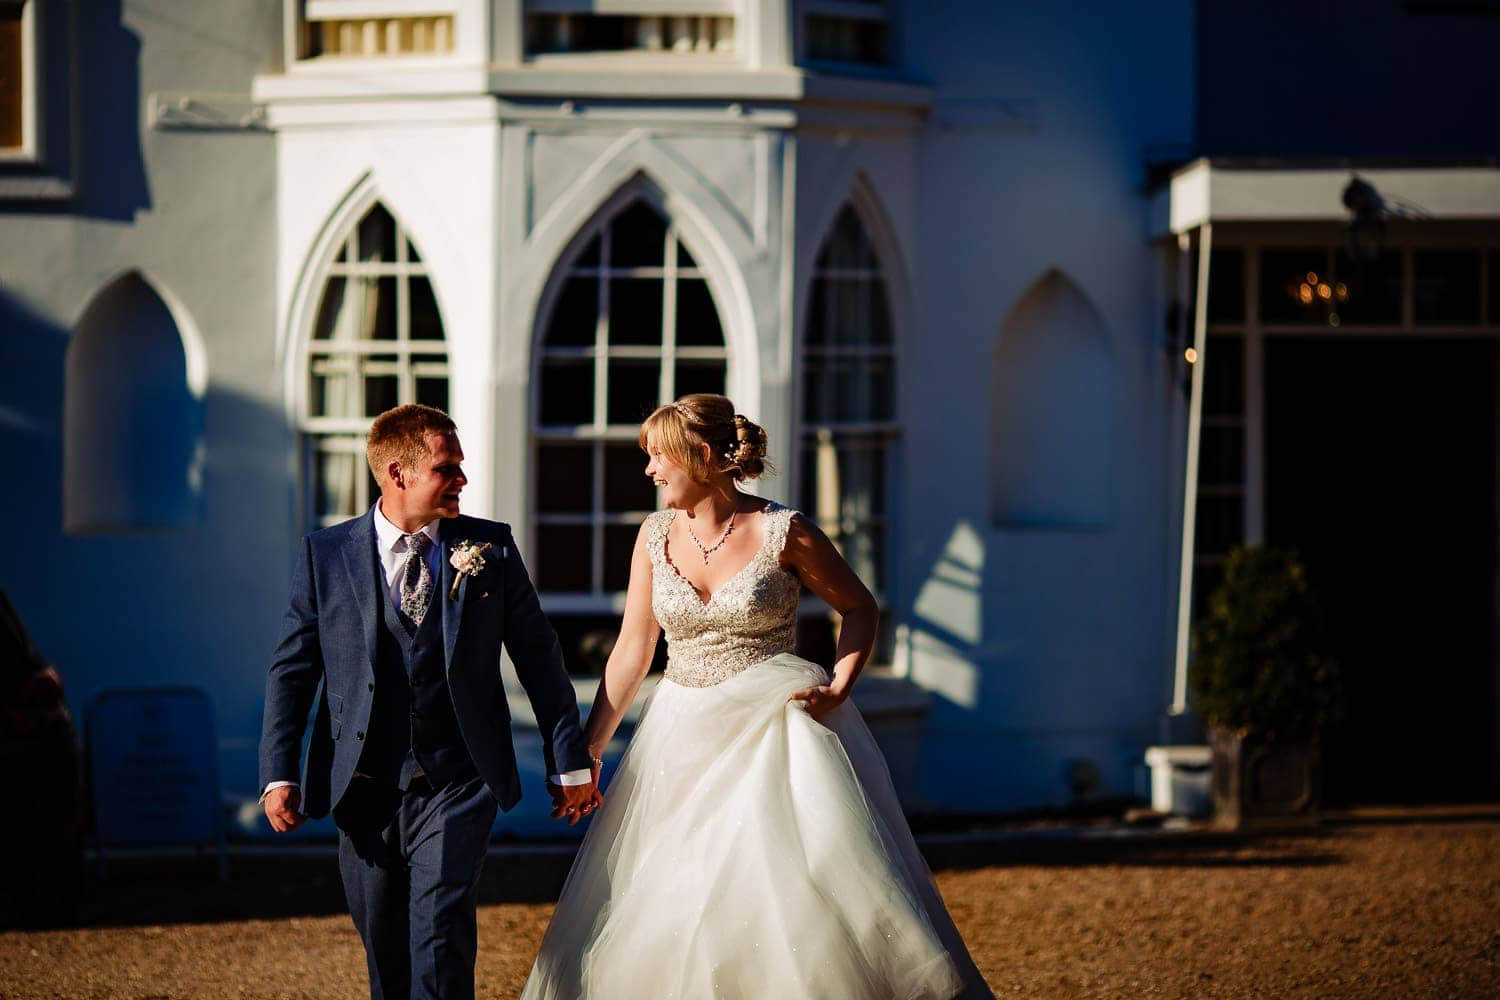 Warwick house rates high in a list of top midlands wedding venues